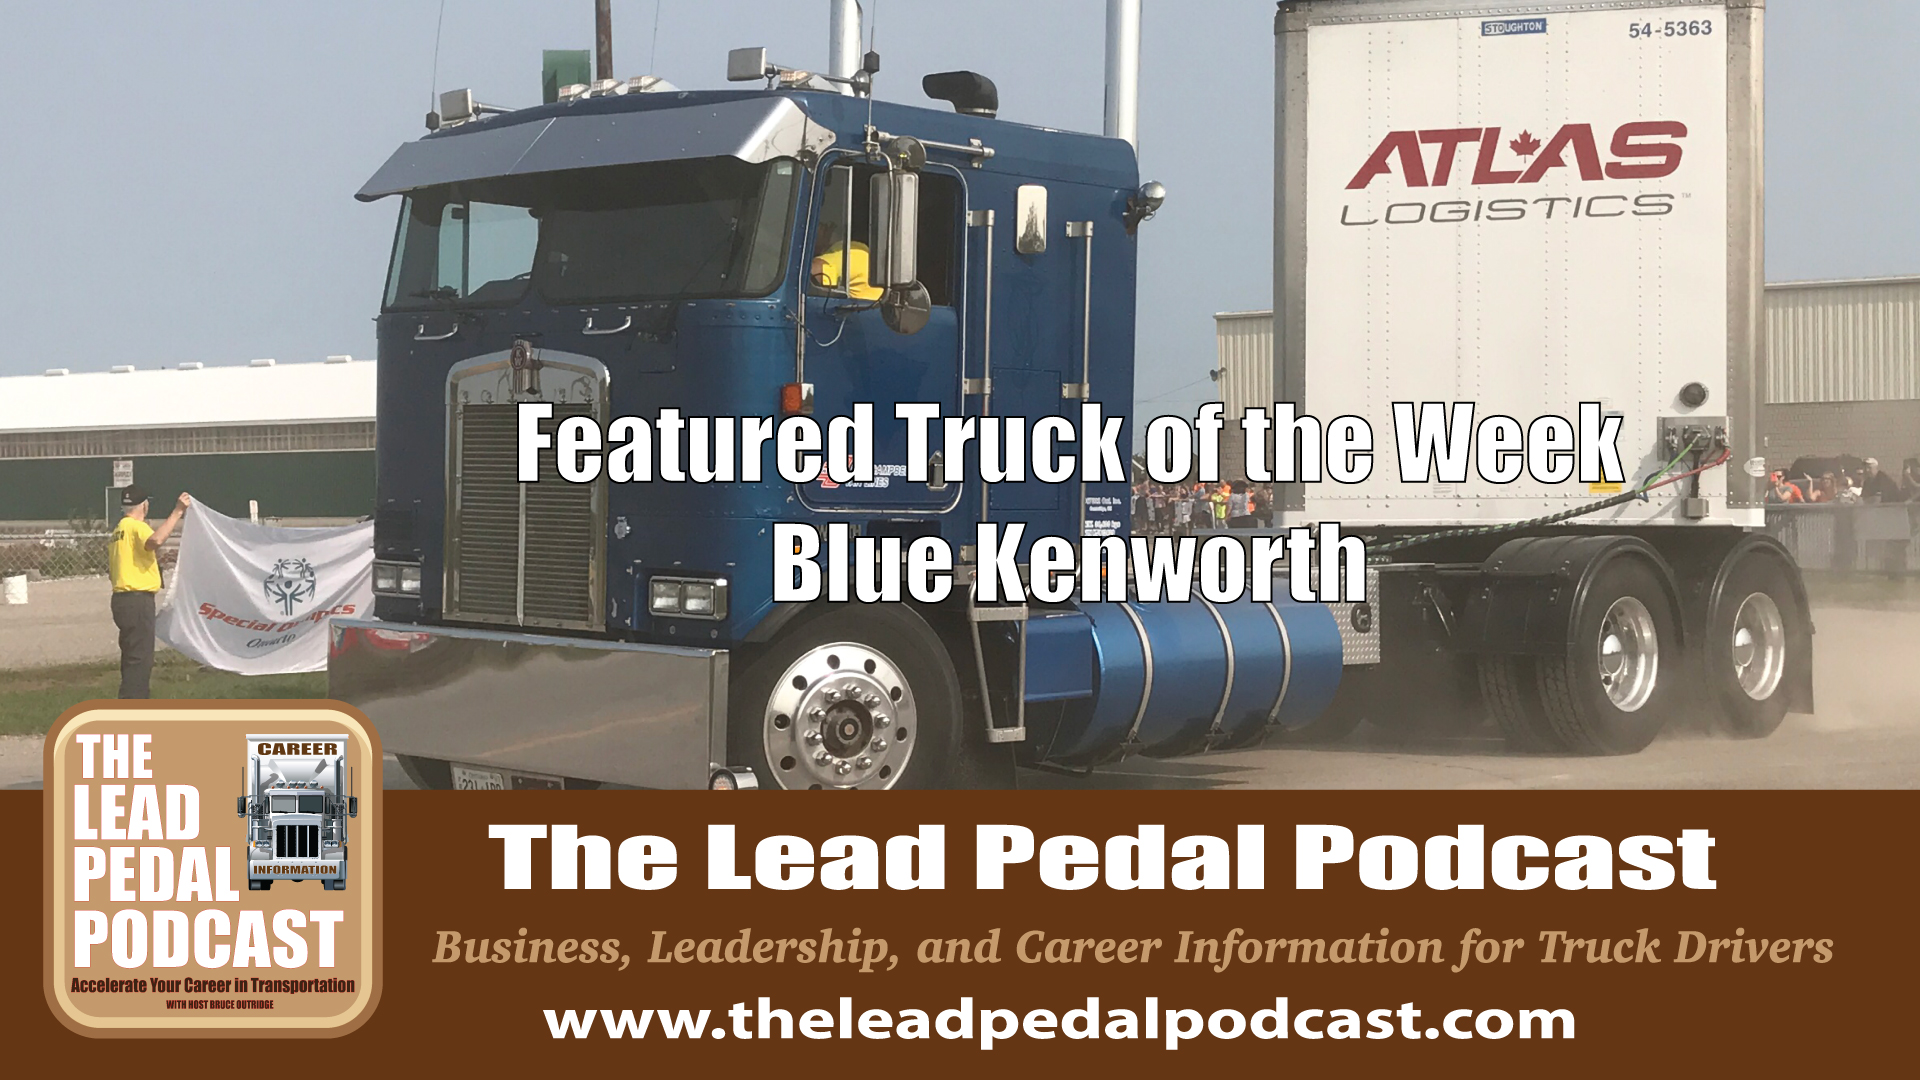 AMJ Featured Truck of the Week